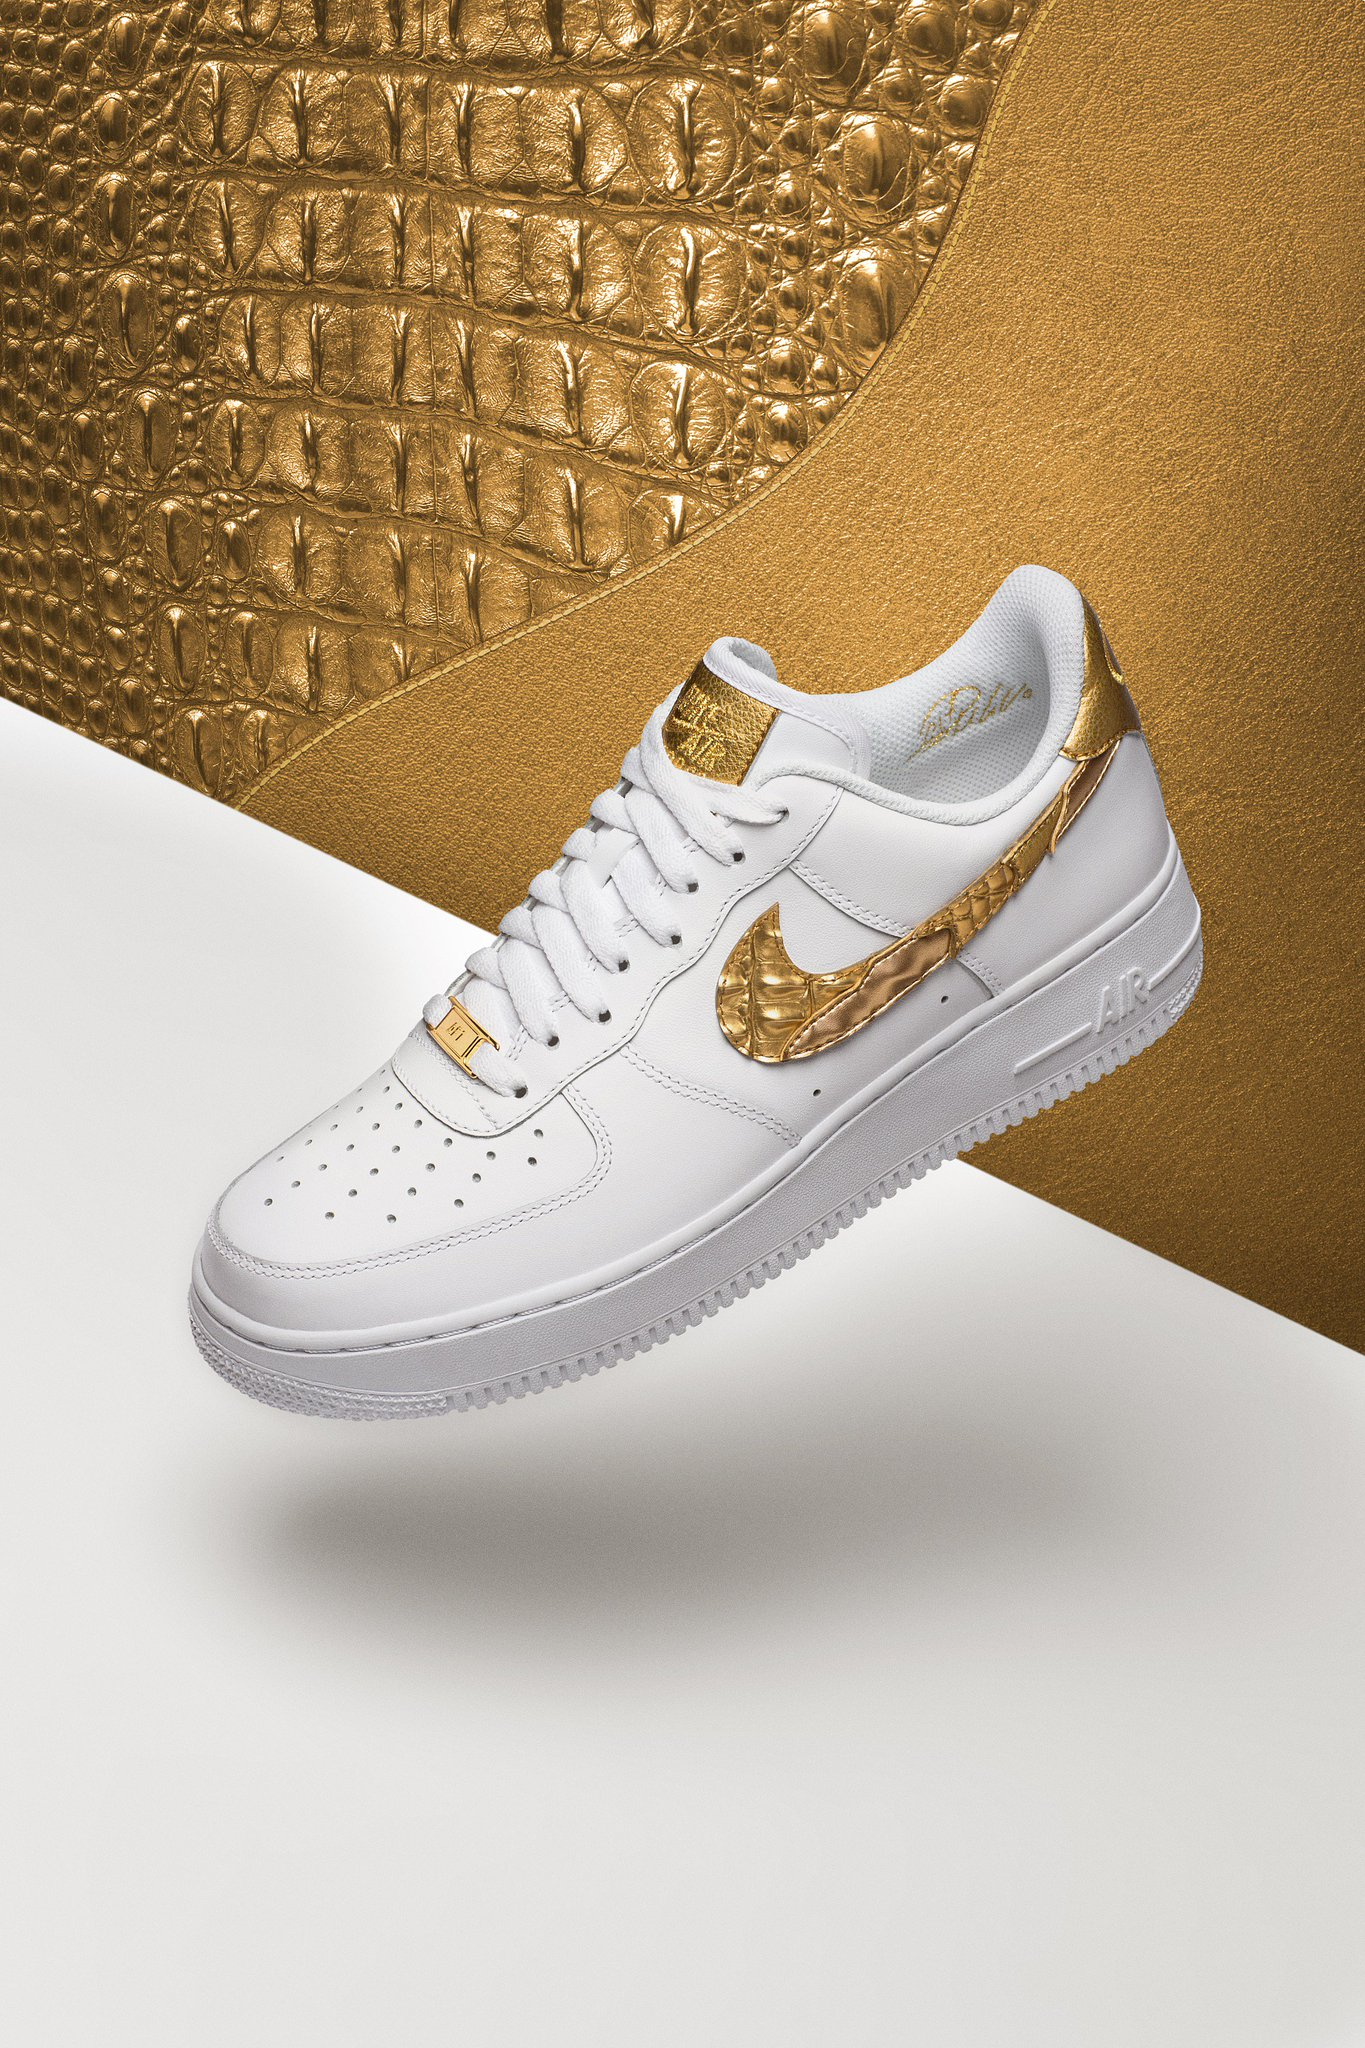 My AF1 CR7's launch today on the Nike SNEAKRS app! #AF1#CR7 Go to https://t.co/adIUxXBRvm https://t.co/4Enyjf4dw6